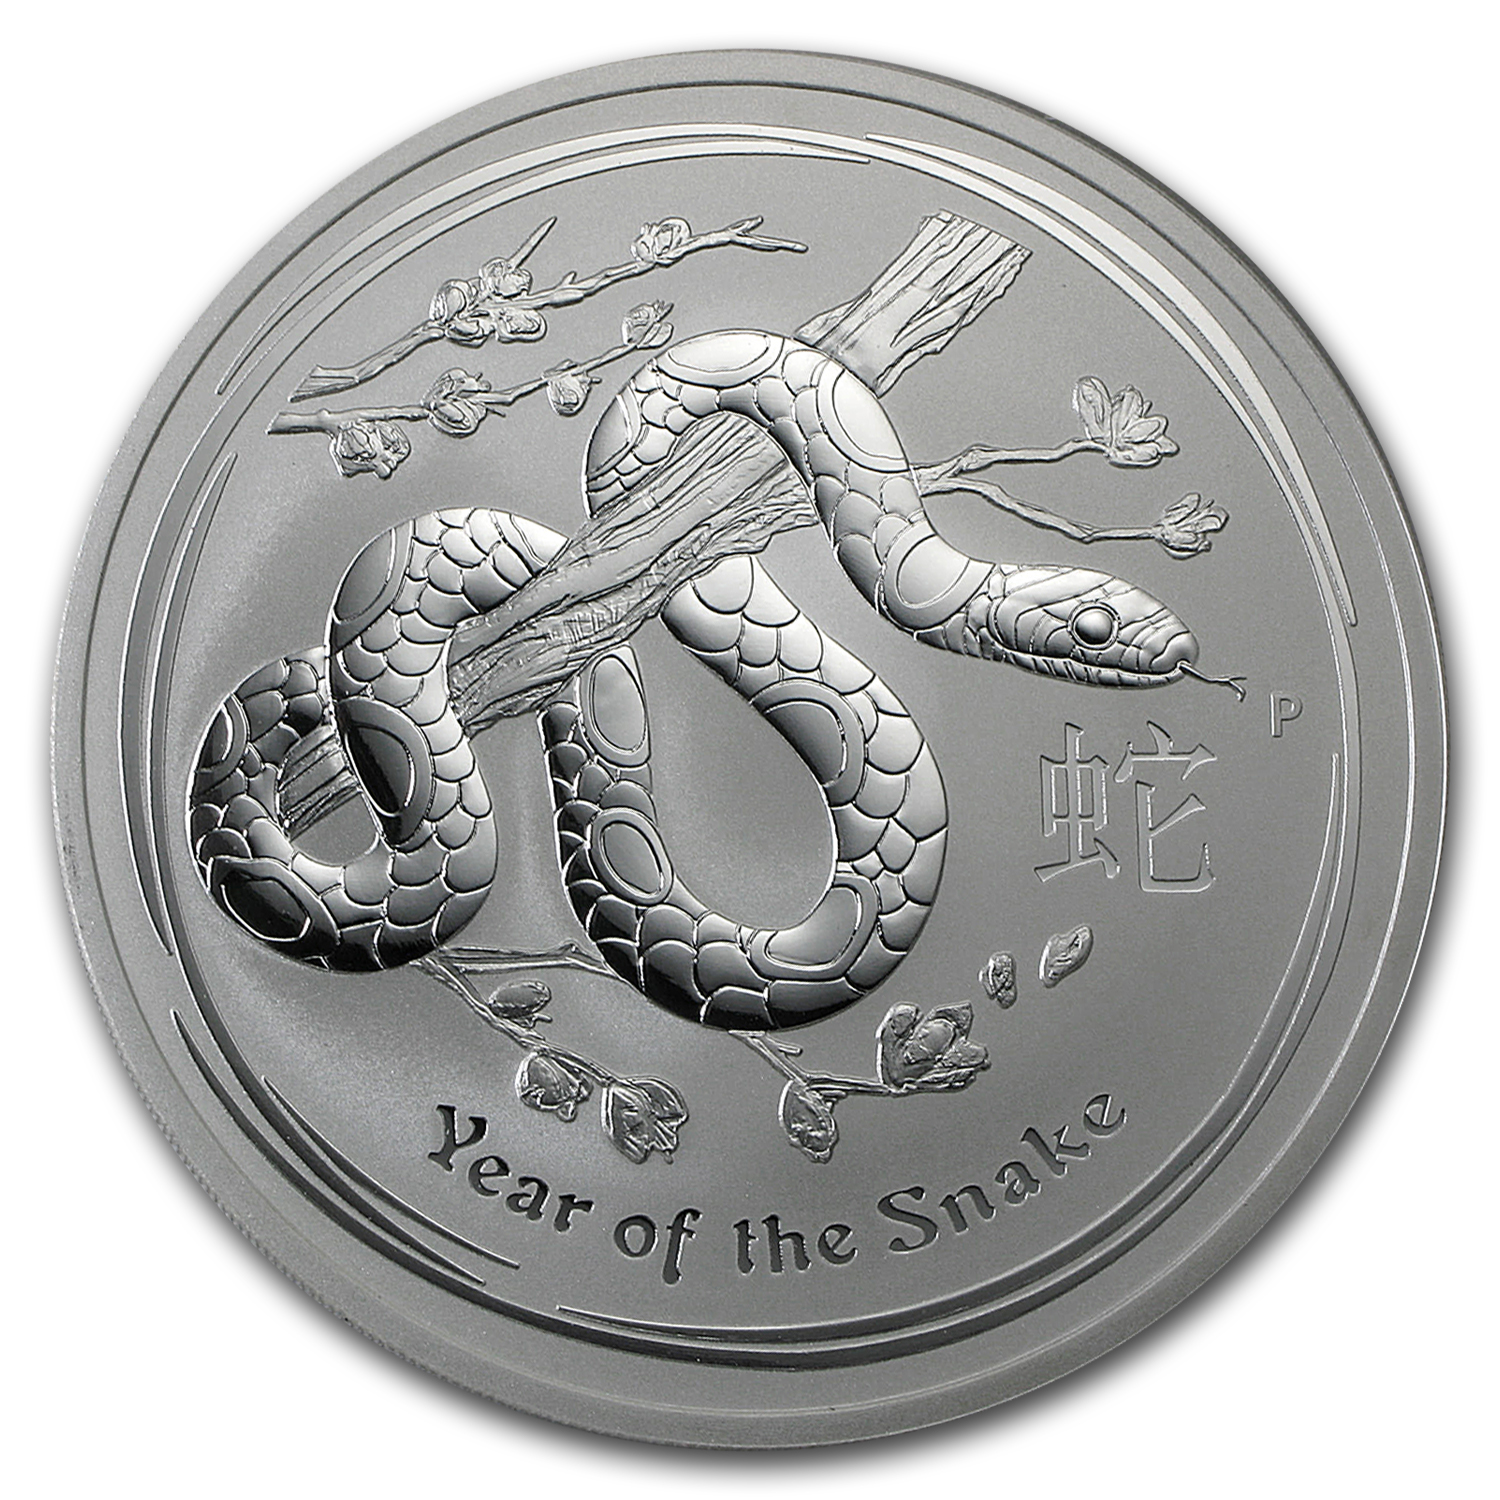 2013 Australia 10 oz Silver Year of the Snake BU